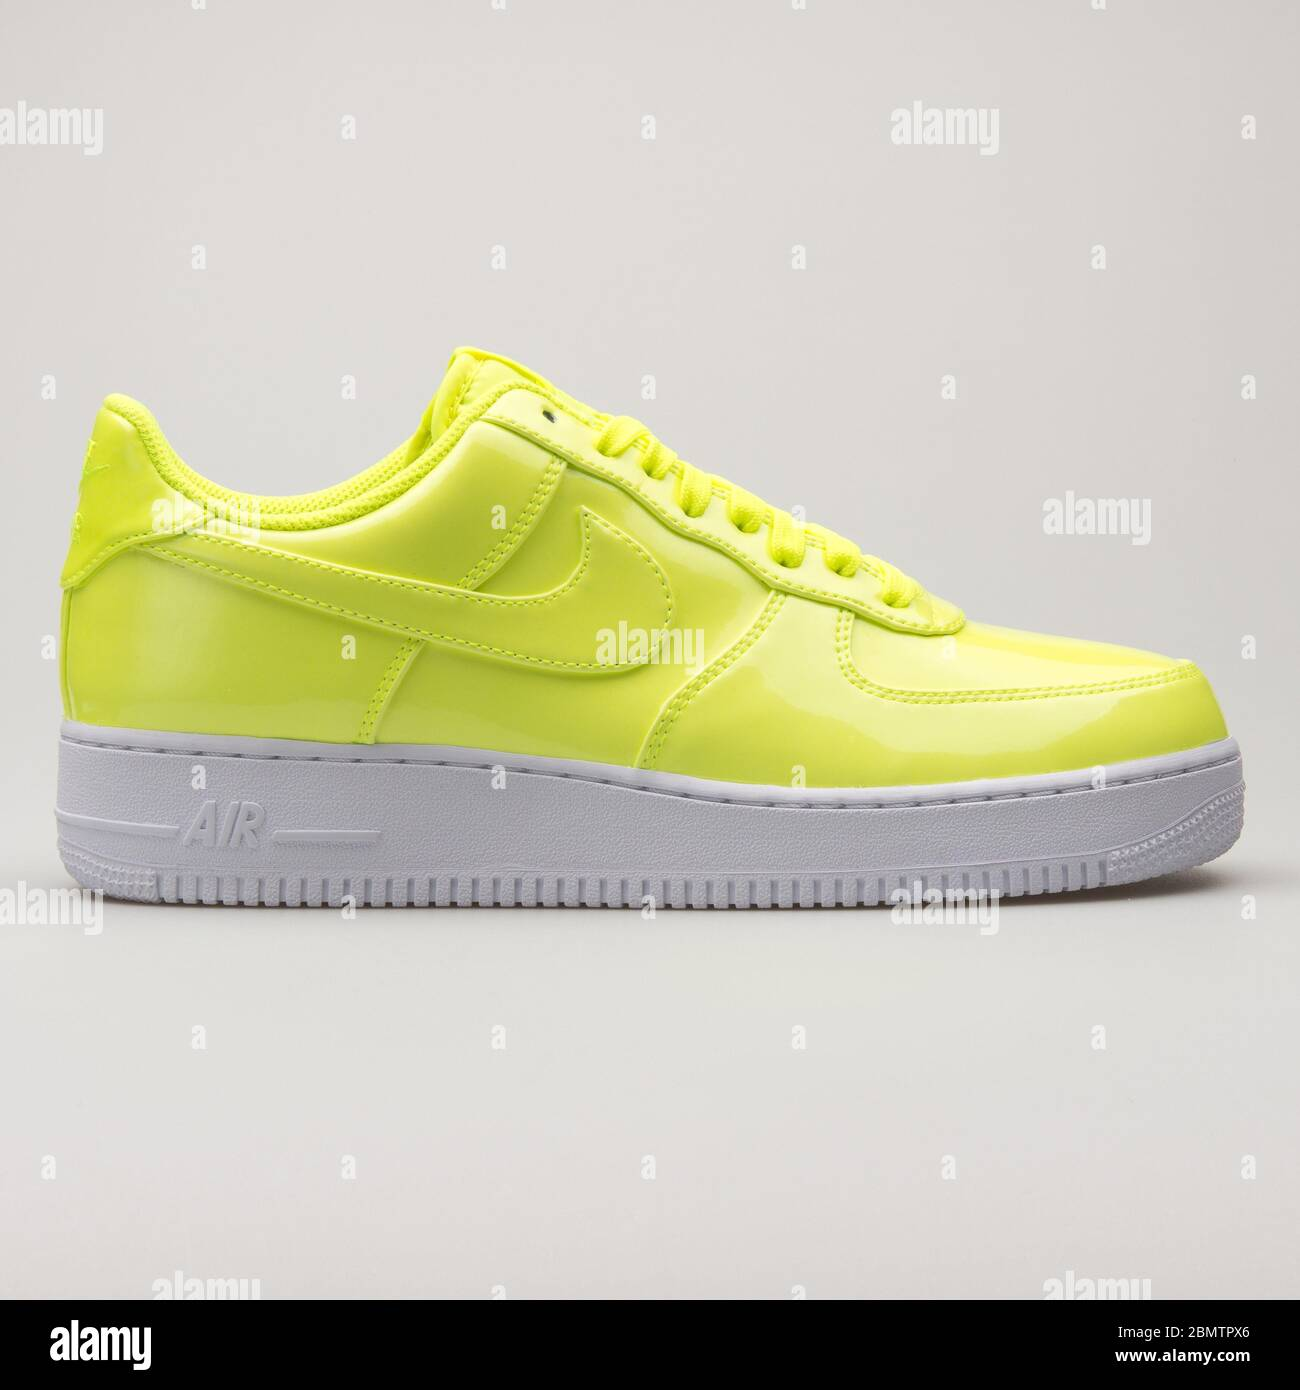 Nike Air Force 1 07 LV8 volt yellow